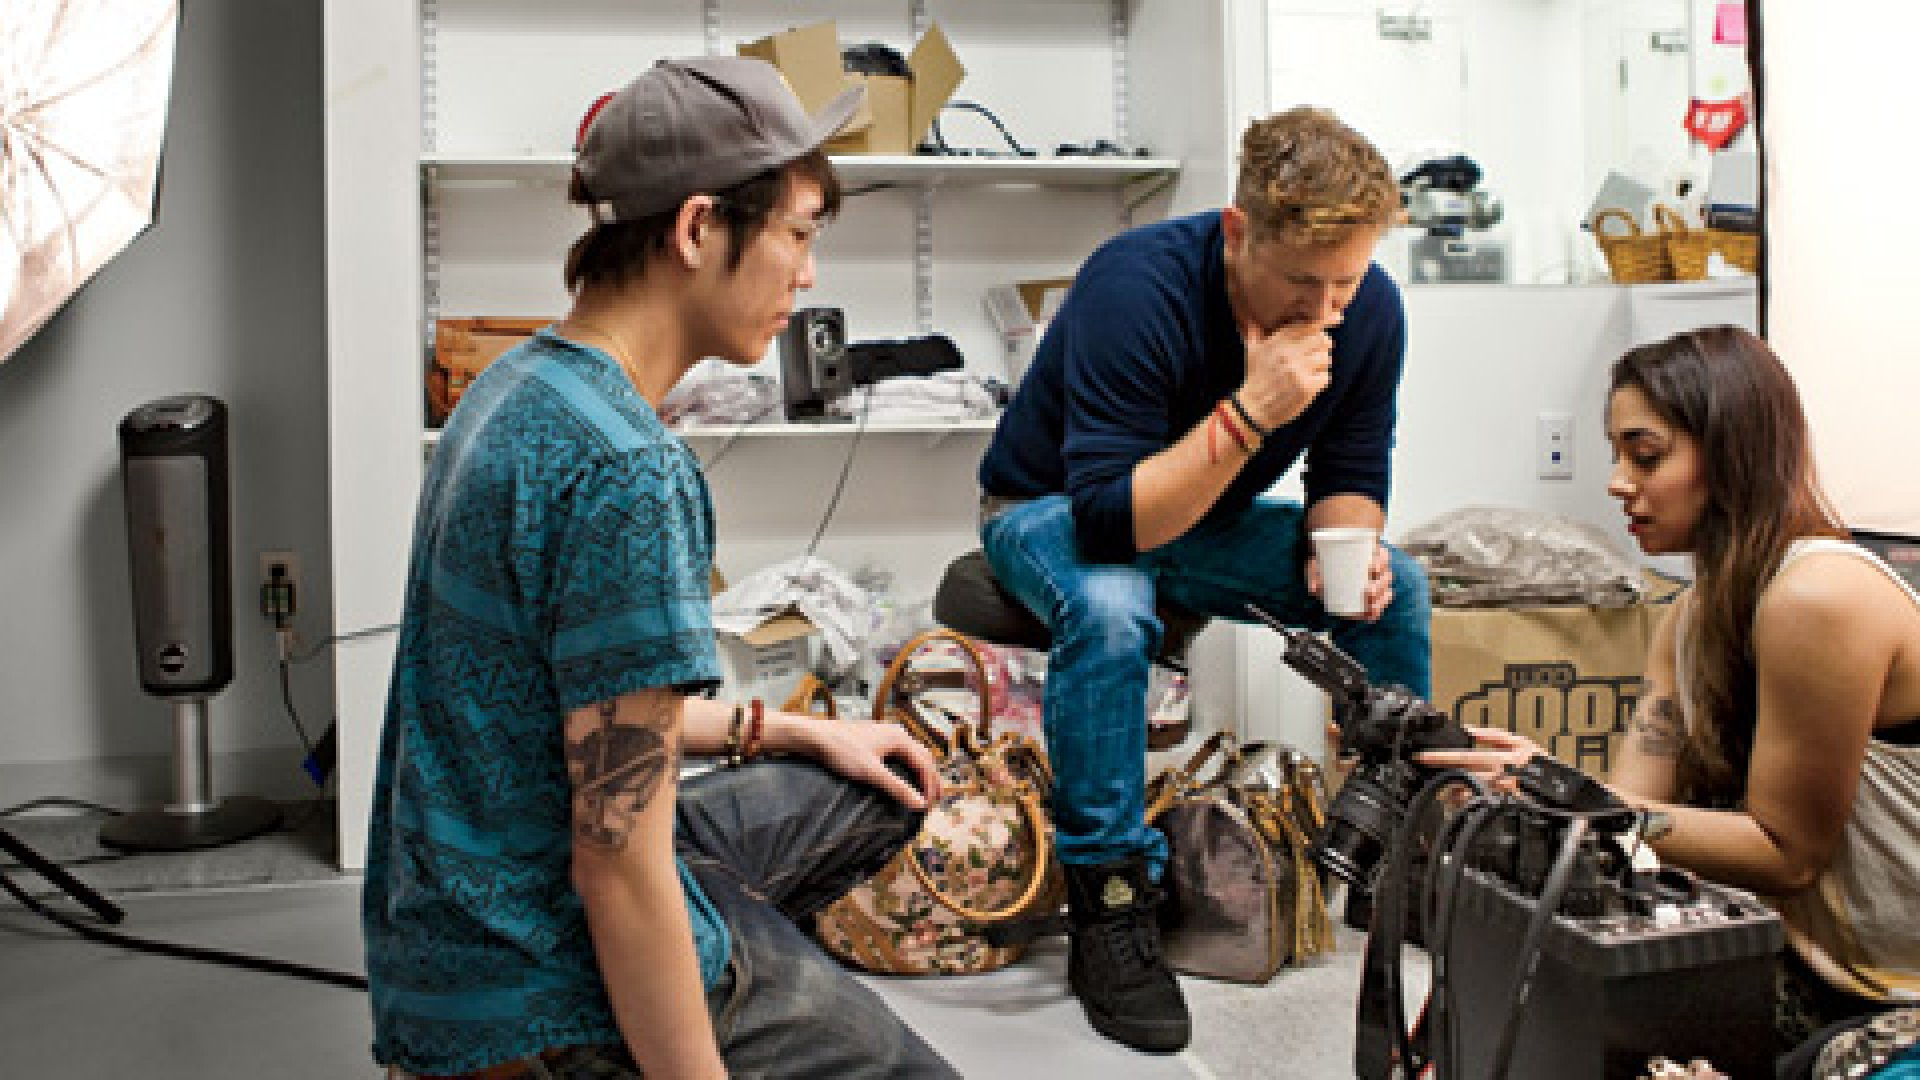 <b>Curator in Chief</b> Greg Selkoe (center), photographer Jackie Earhart, and her assistant, Tommy Vo, check out some product shots.